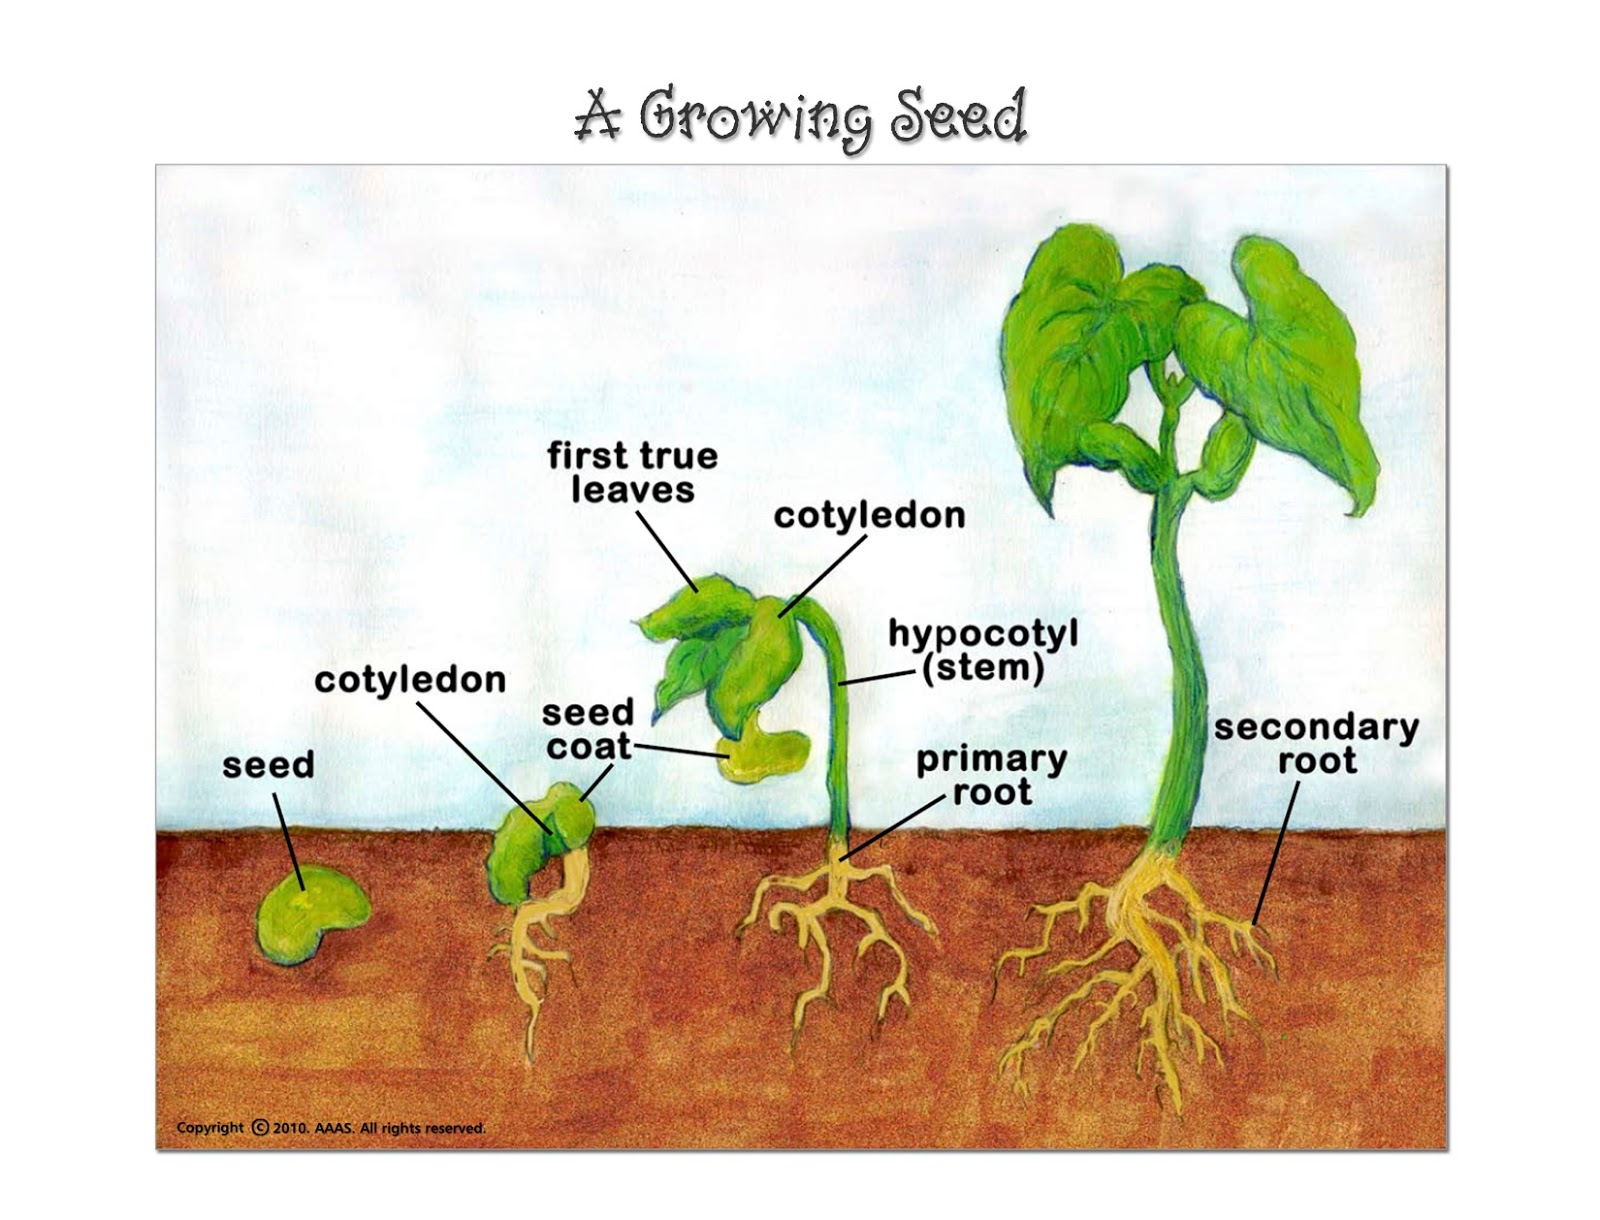 bean seedling diagram 1987 porsche 924s wiring seed bing images